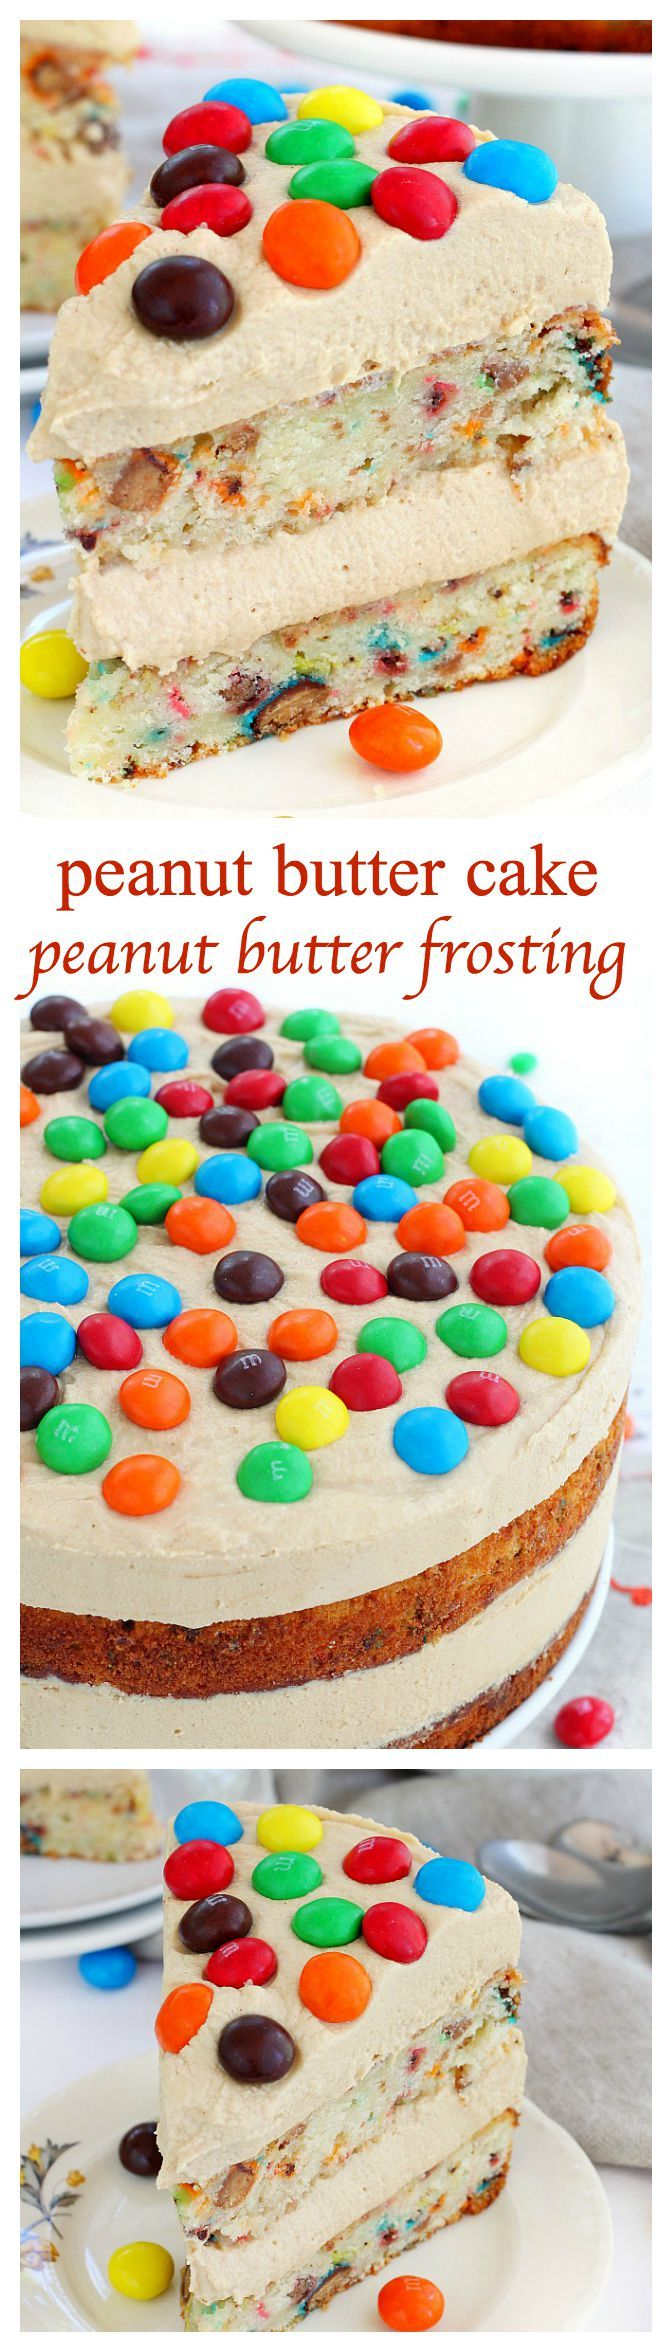 Peanut butter cake loaded with chopped Peanut Butter M&M's and a dreamy peanut butter frosting, this cake is a peanut butter lover dream come true!